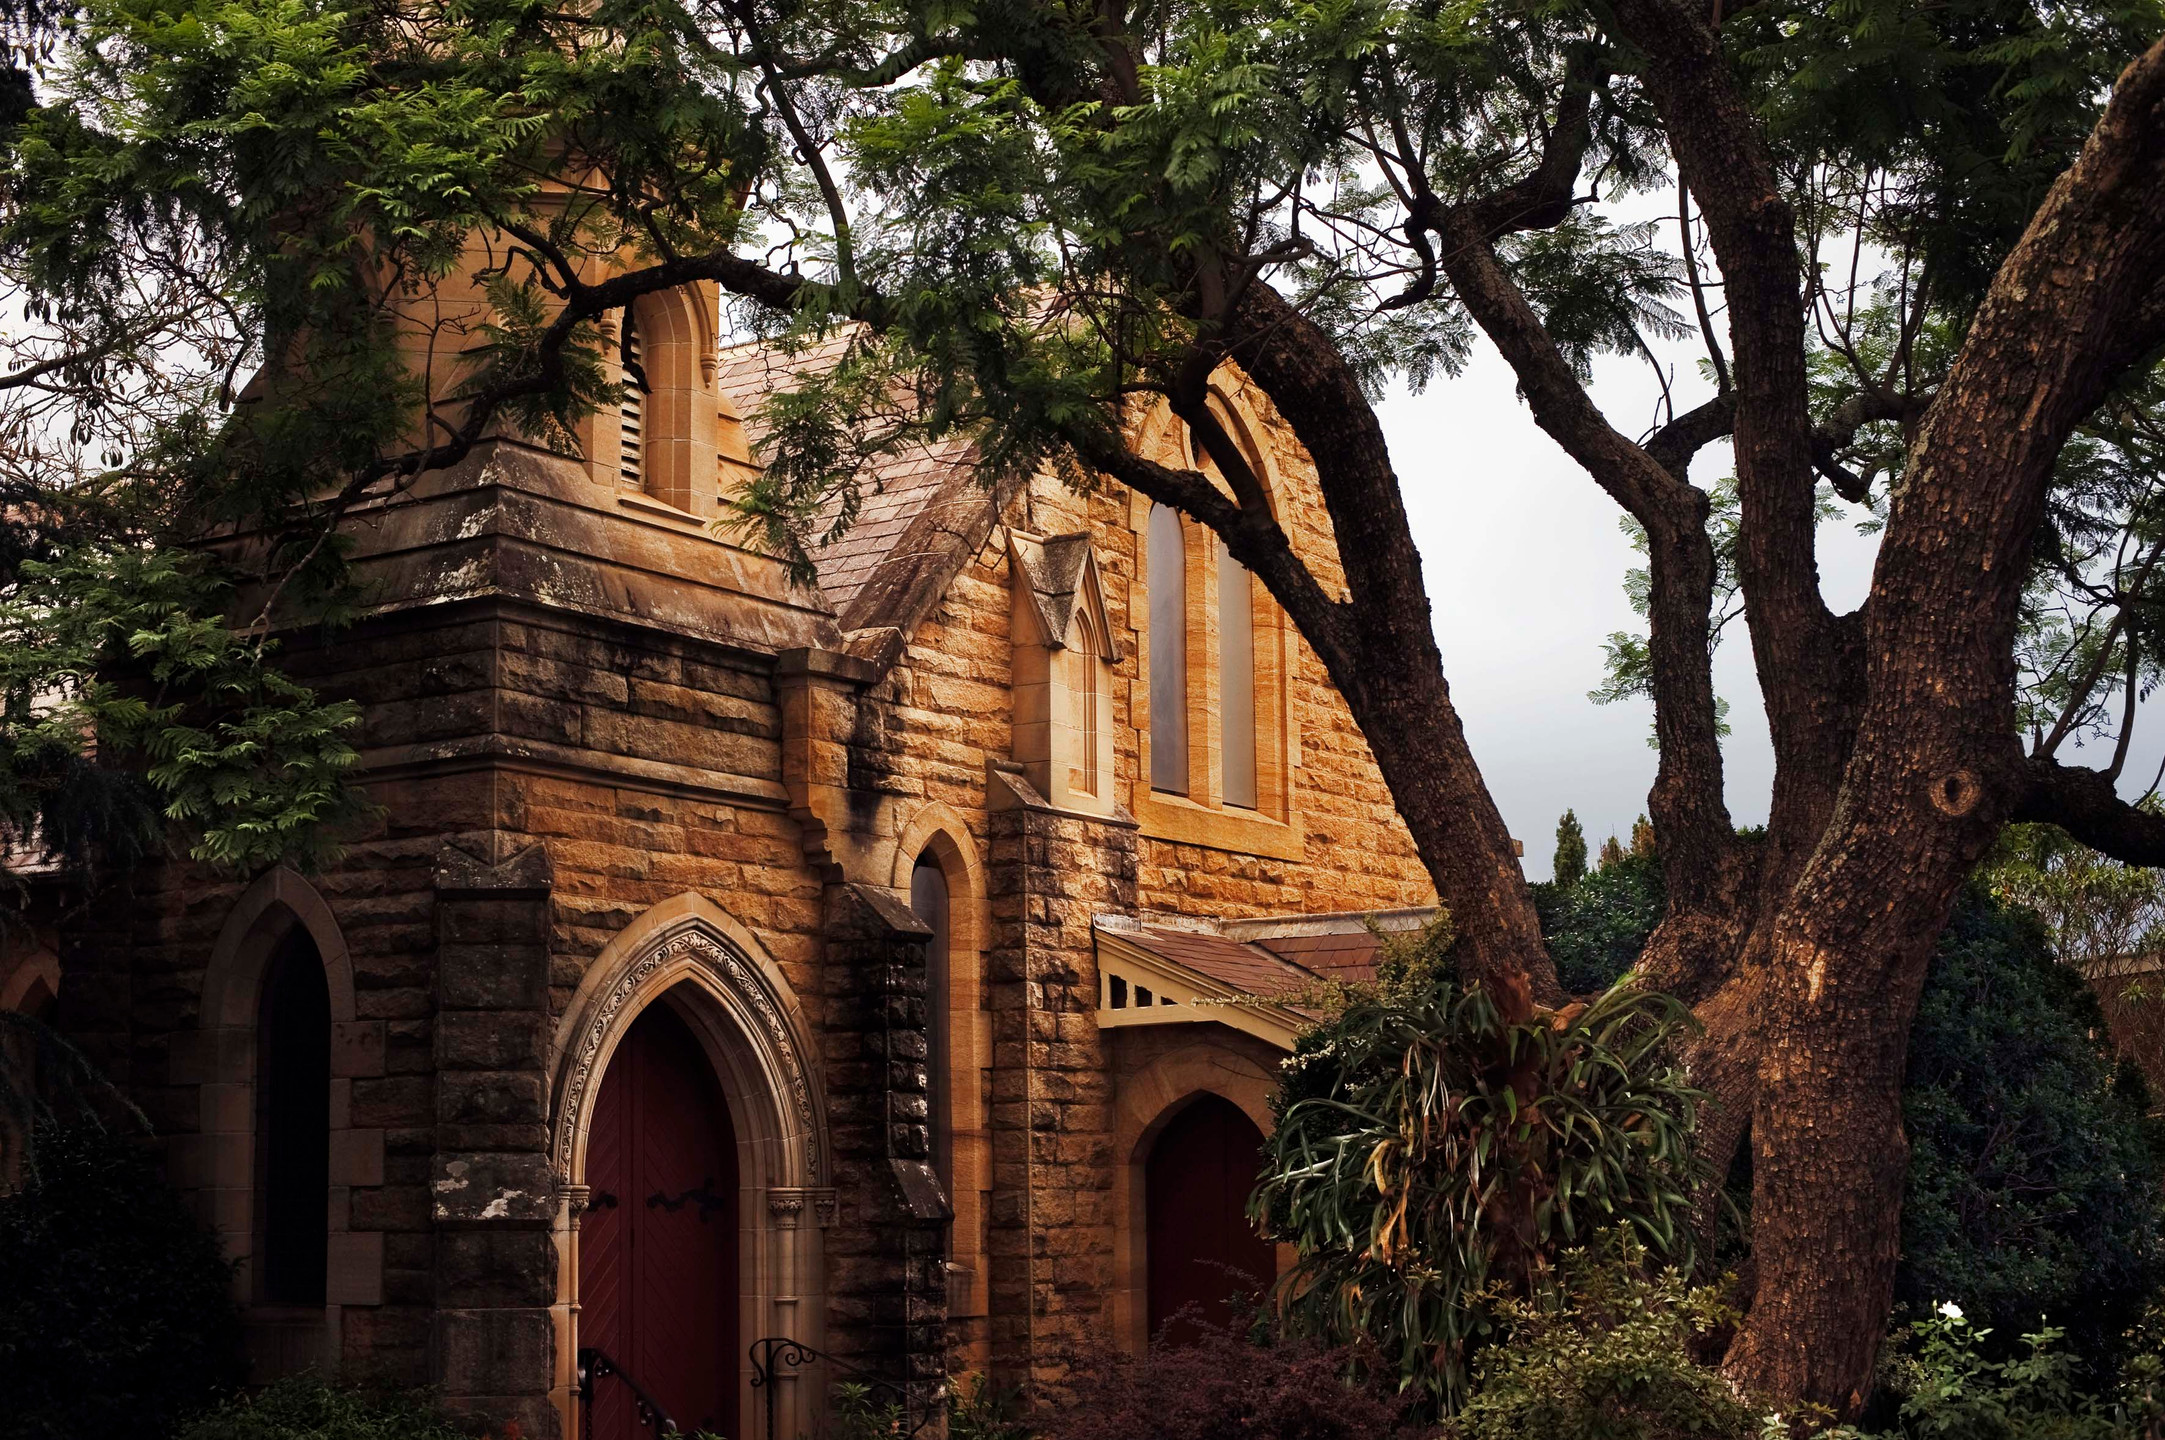 The old Presbyterian church in the main street of Springwood.